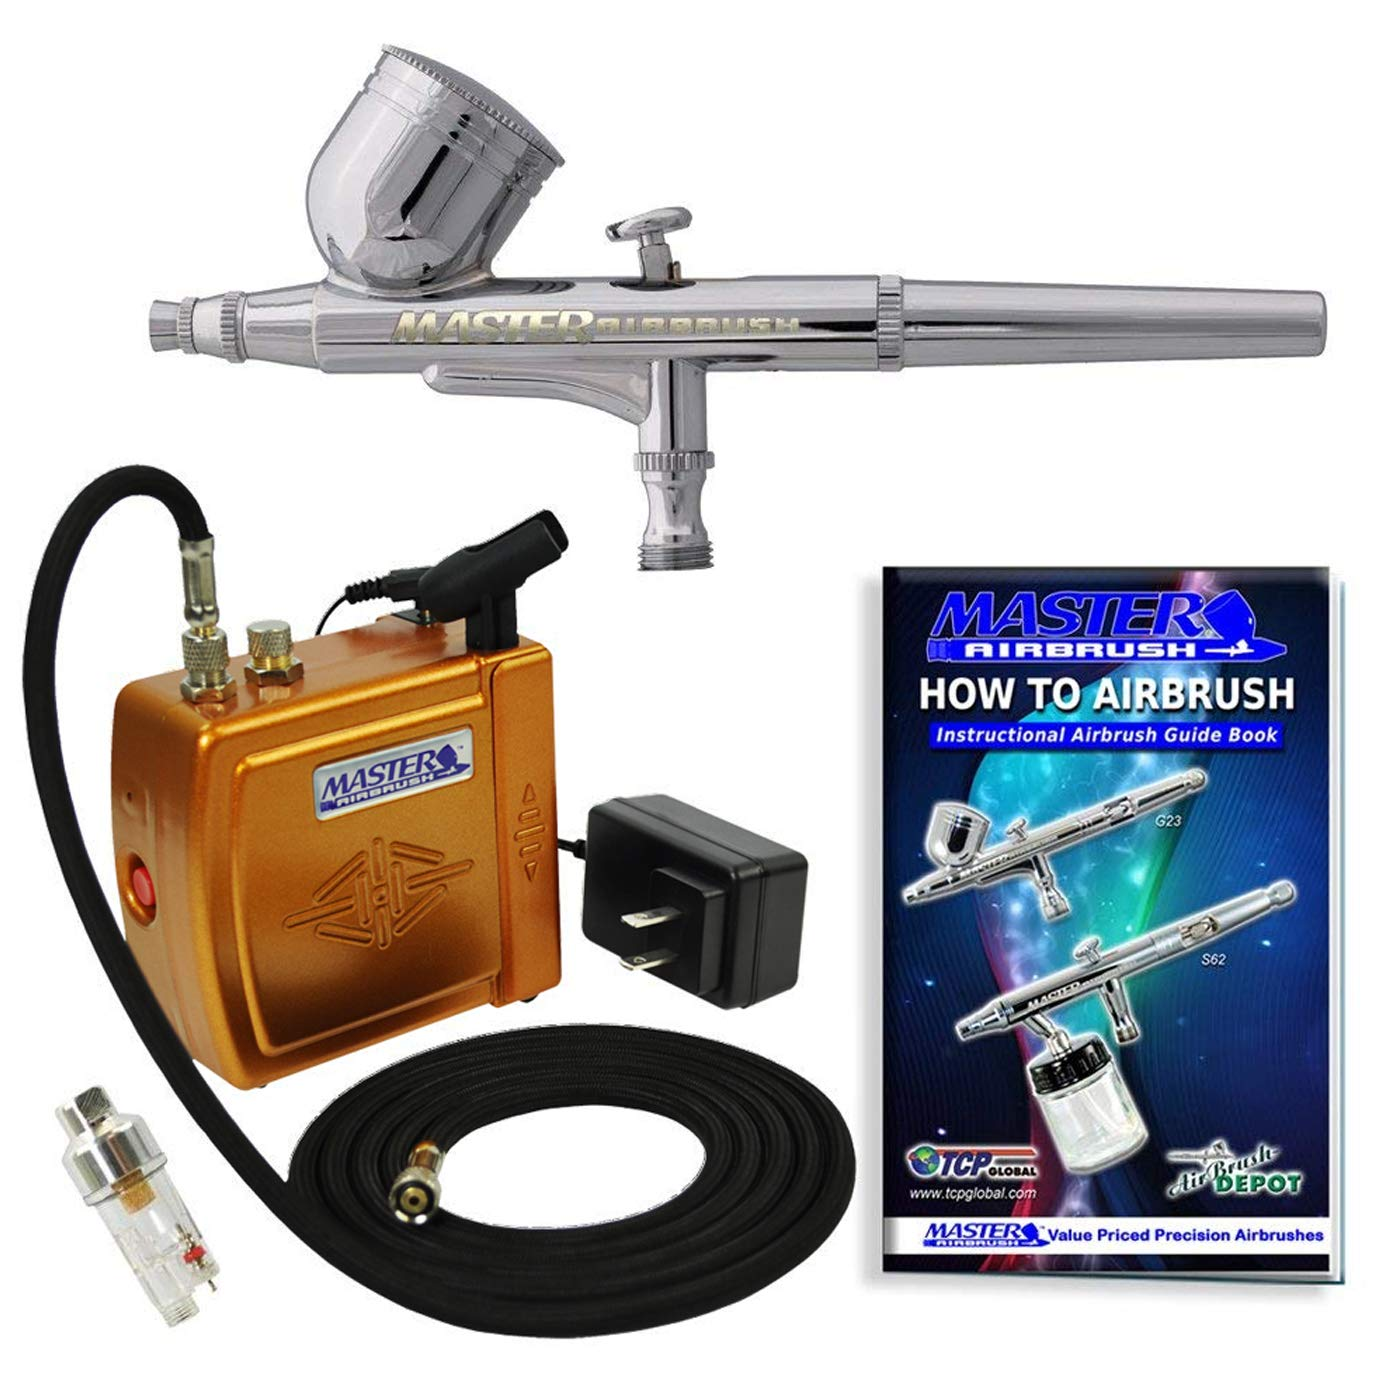 Master Airbrush Brand Model G22 Airbrushing System with Model C16-G Gold Portable Mini Airbrush Air Compressor-The Complete Set Now Includes a (FREE) How to Airbrush Training Book to Get You Started by Master Airbrush SYNCHKG036578